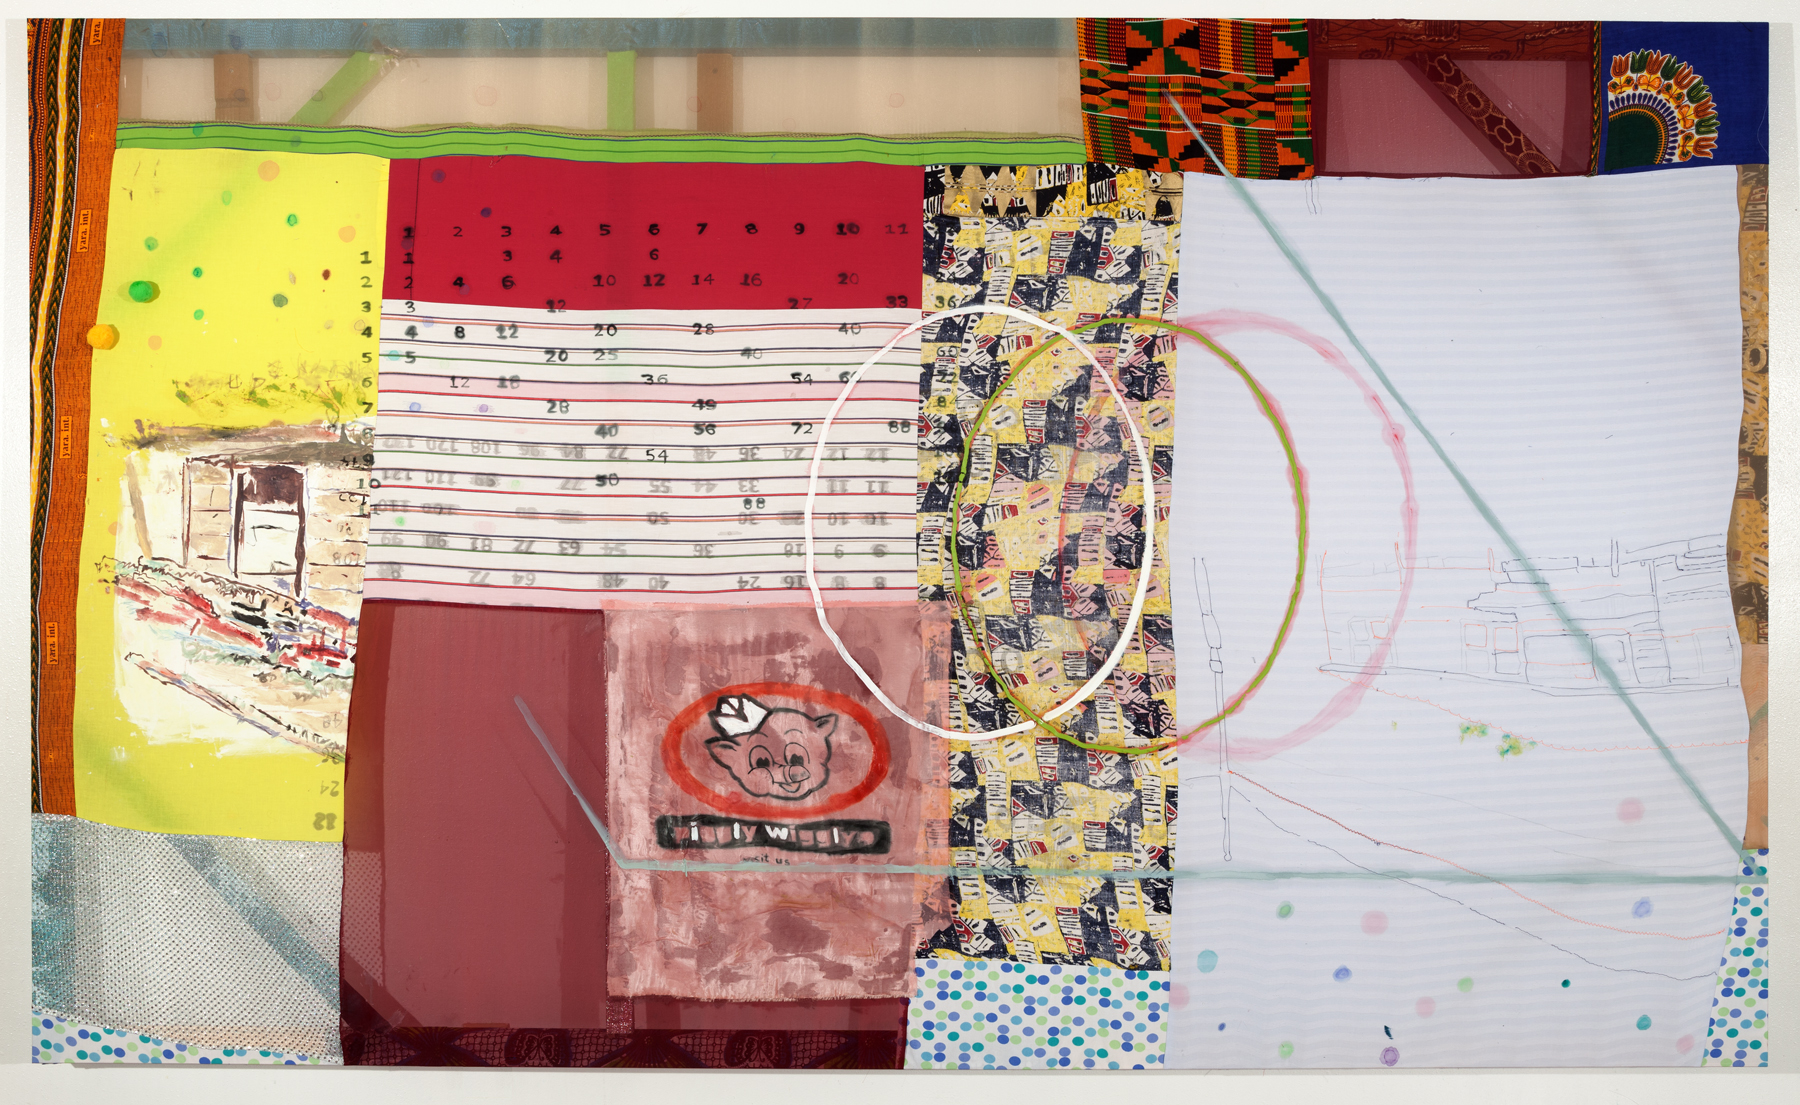 Tameka Jenean Norris   12 Times Table , 2014 acrylic and oil on fabric 60 x 100 inches 152.4 x 254 cm